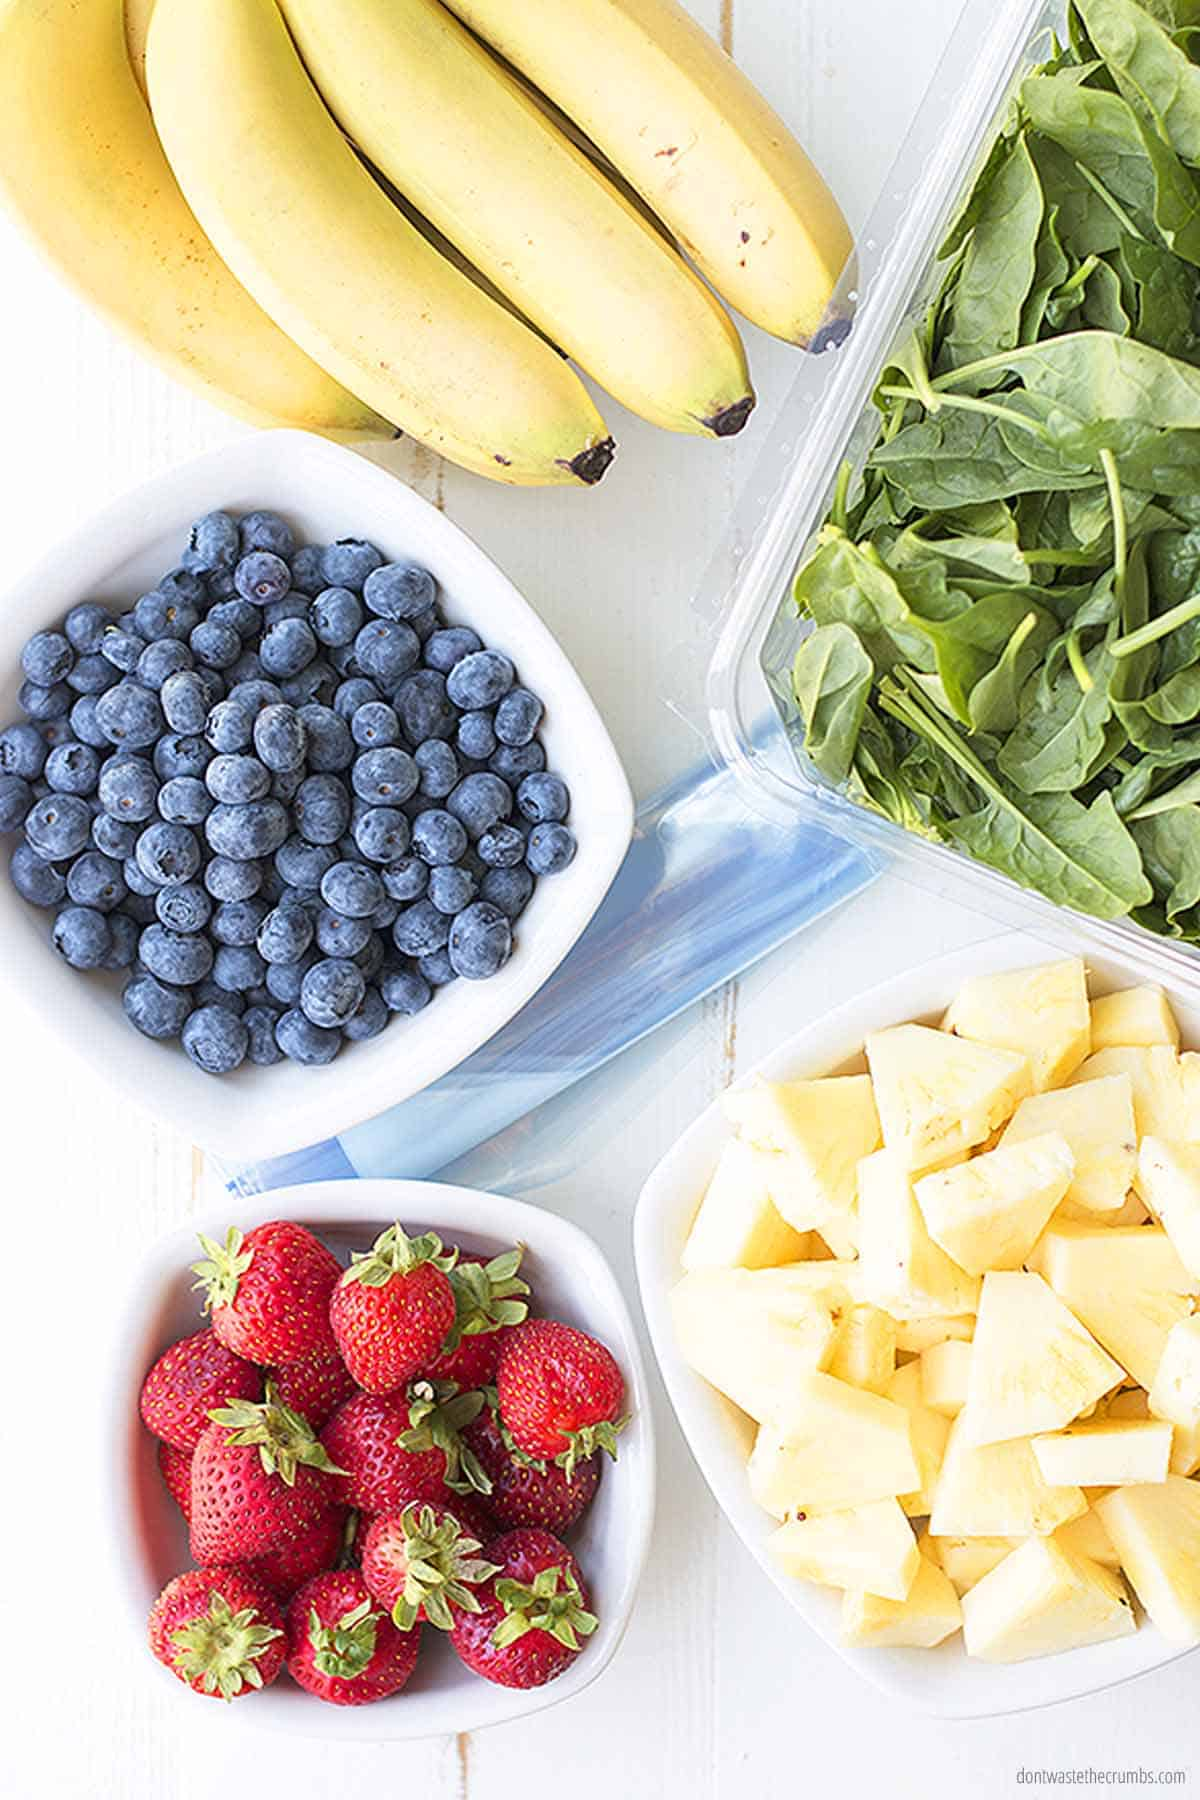 Five separate fresh fruit ingredients ready to be added to smoothie packs. There is a bowl of blueberries, strawberries, pineapple, and kale. There is also an unpeeled bunch of bananas.